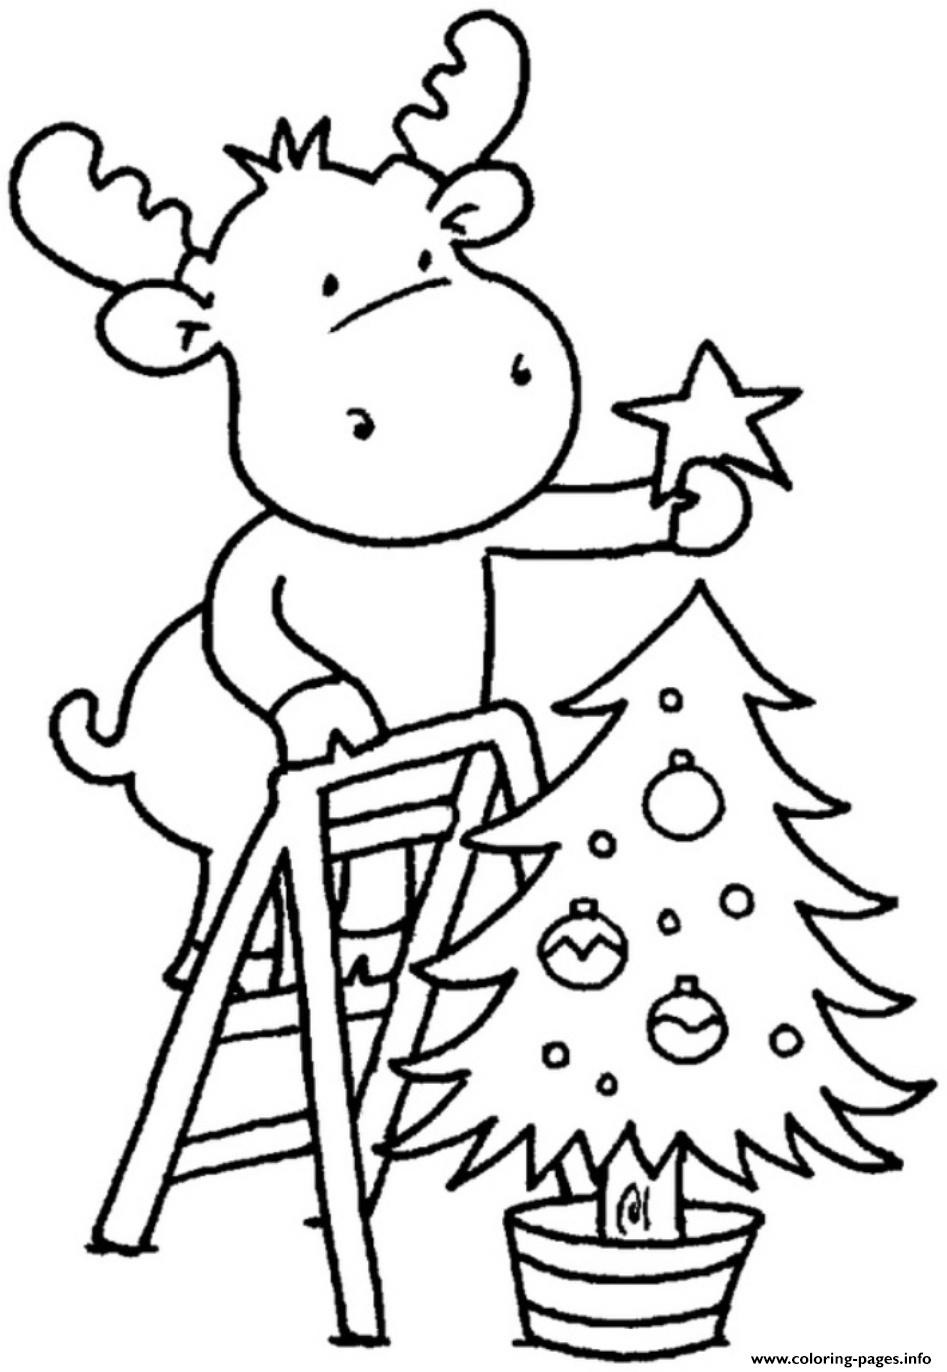 Christmas Coloring Pages For Kids Printable  Christmas Tree For Children Coloring Pages Printable